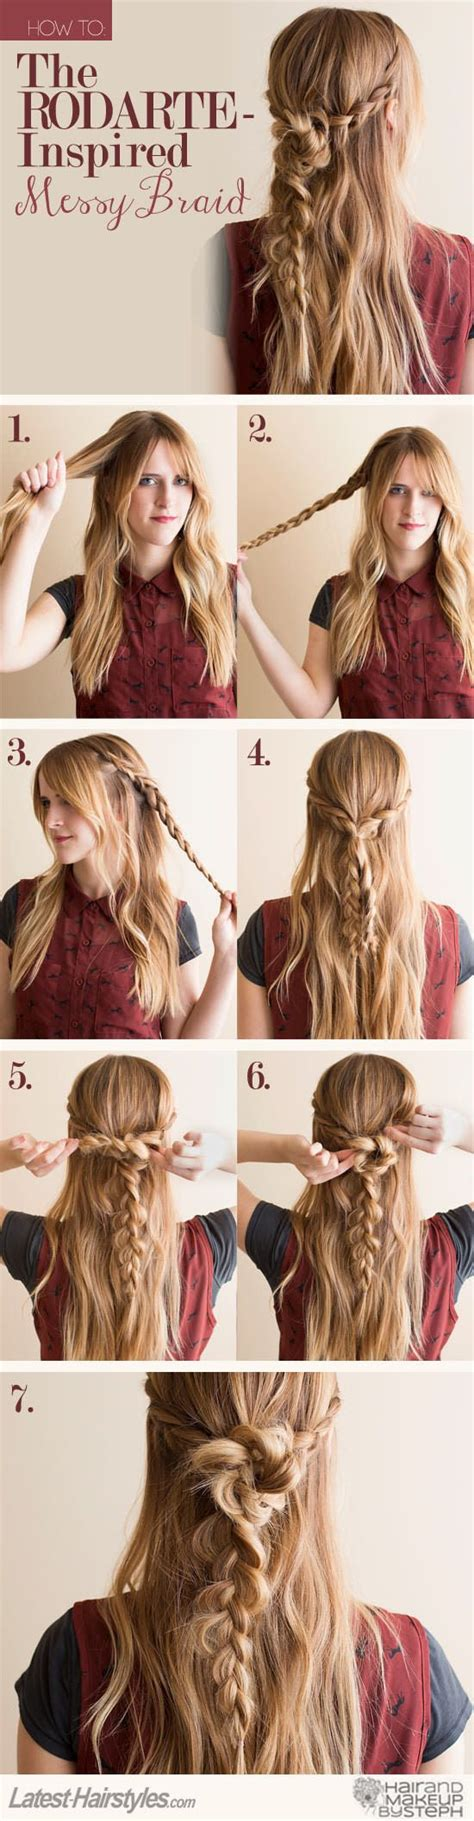 chic messy hairstyles for fall 2015 unique braided chic messy hairstyles for fall 2015 styles weekly